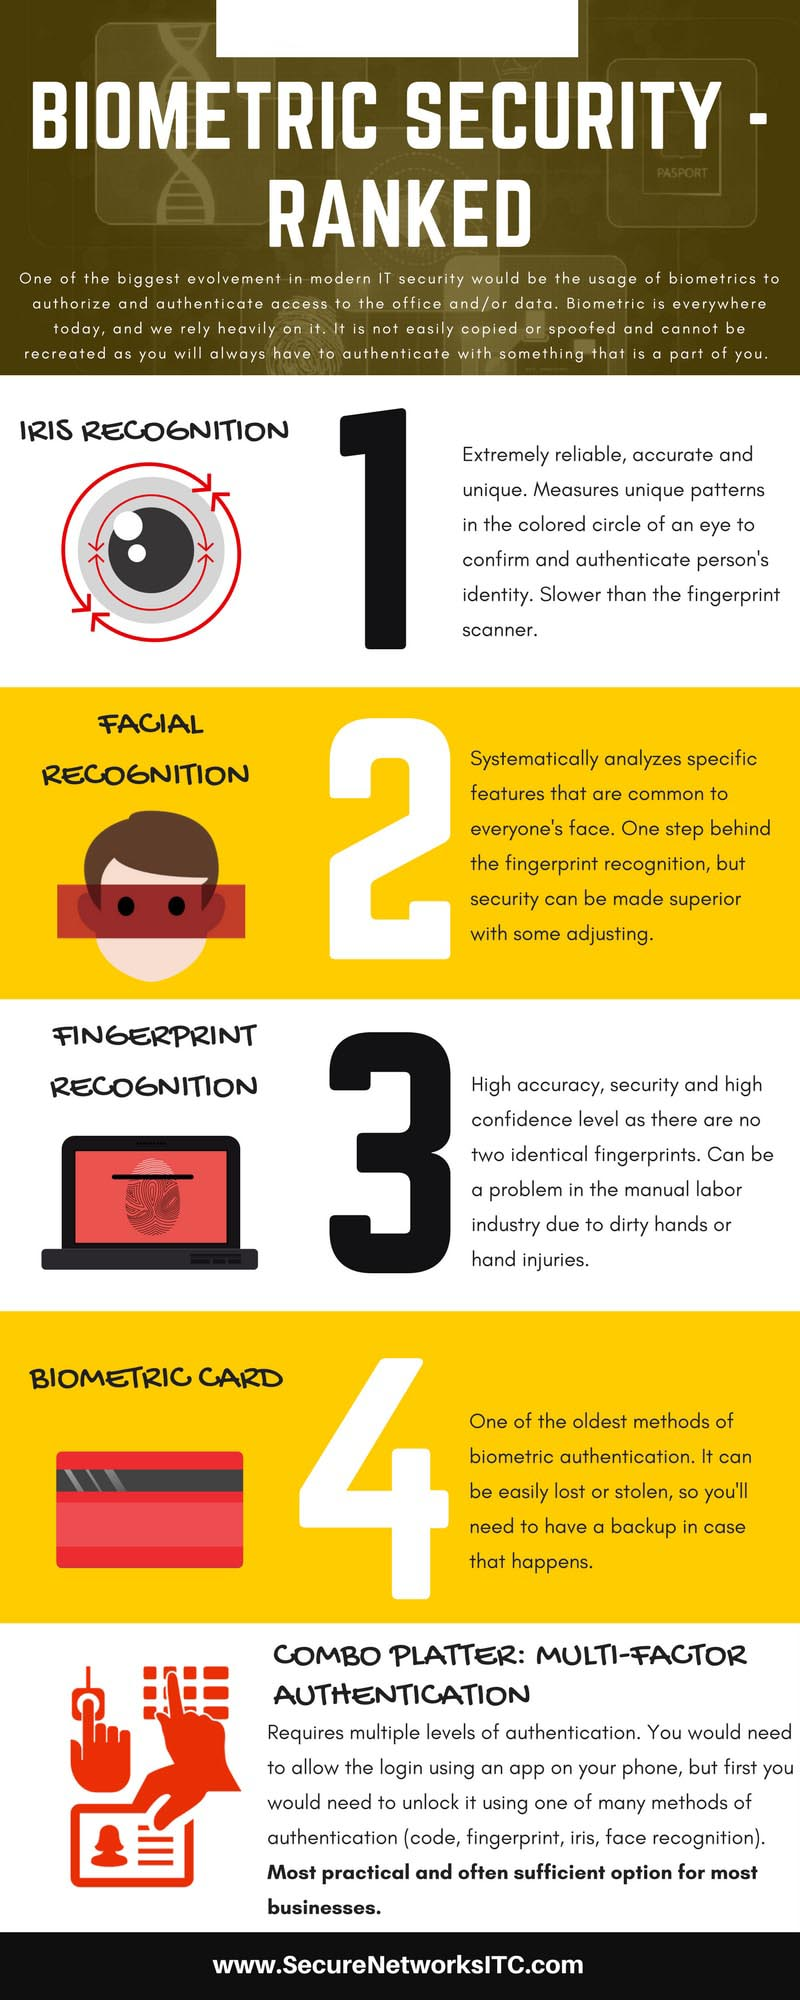 Biometric Security - Ranked - Secure Networks INC Infographic